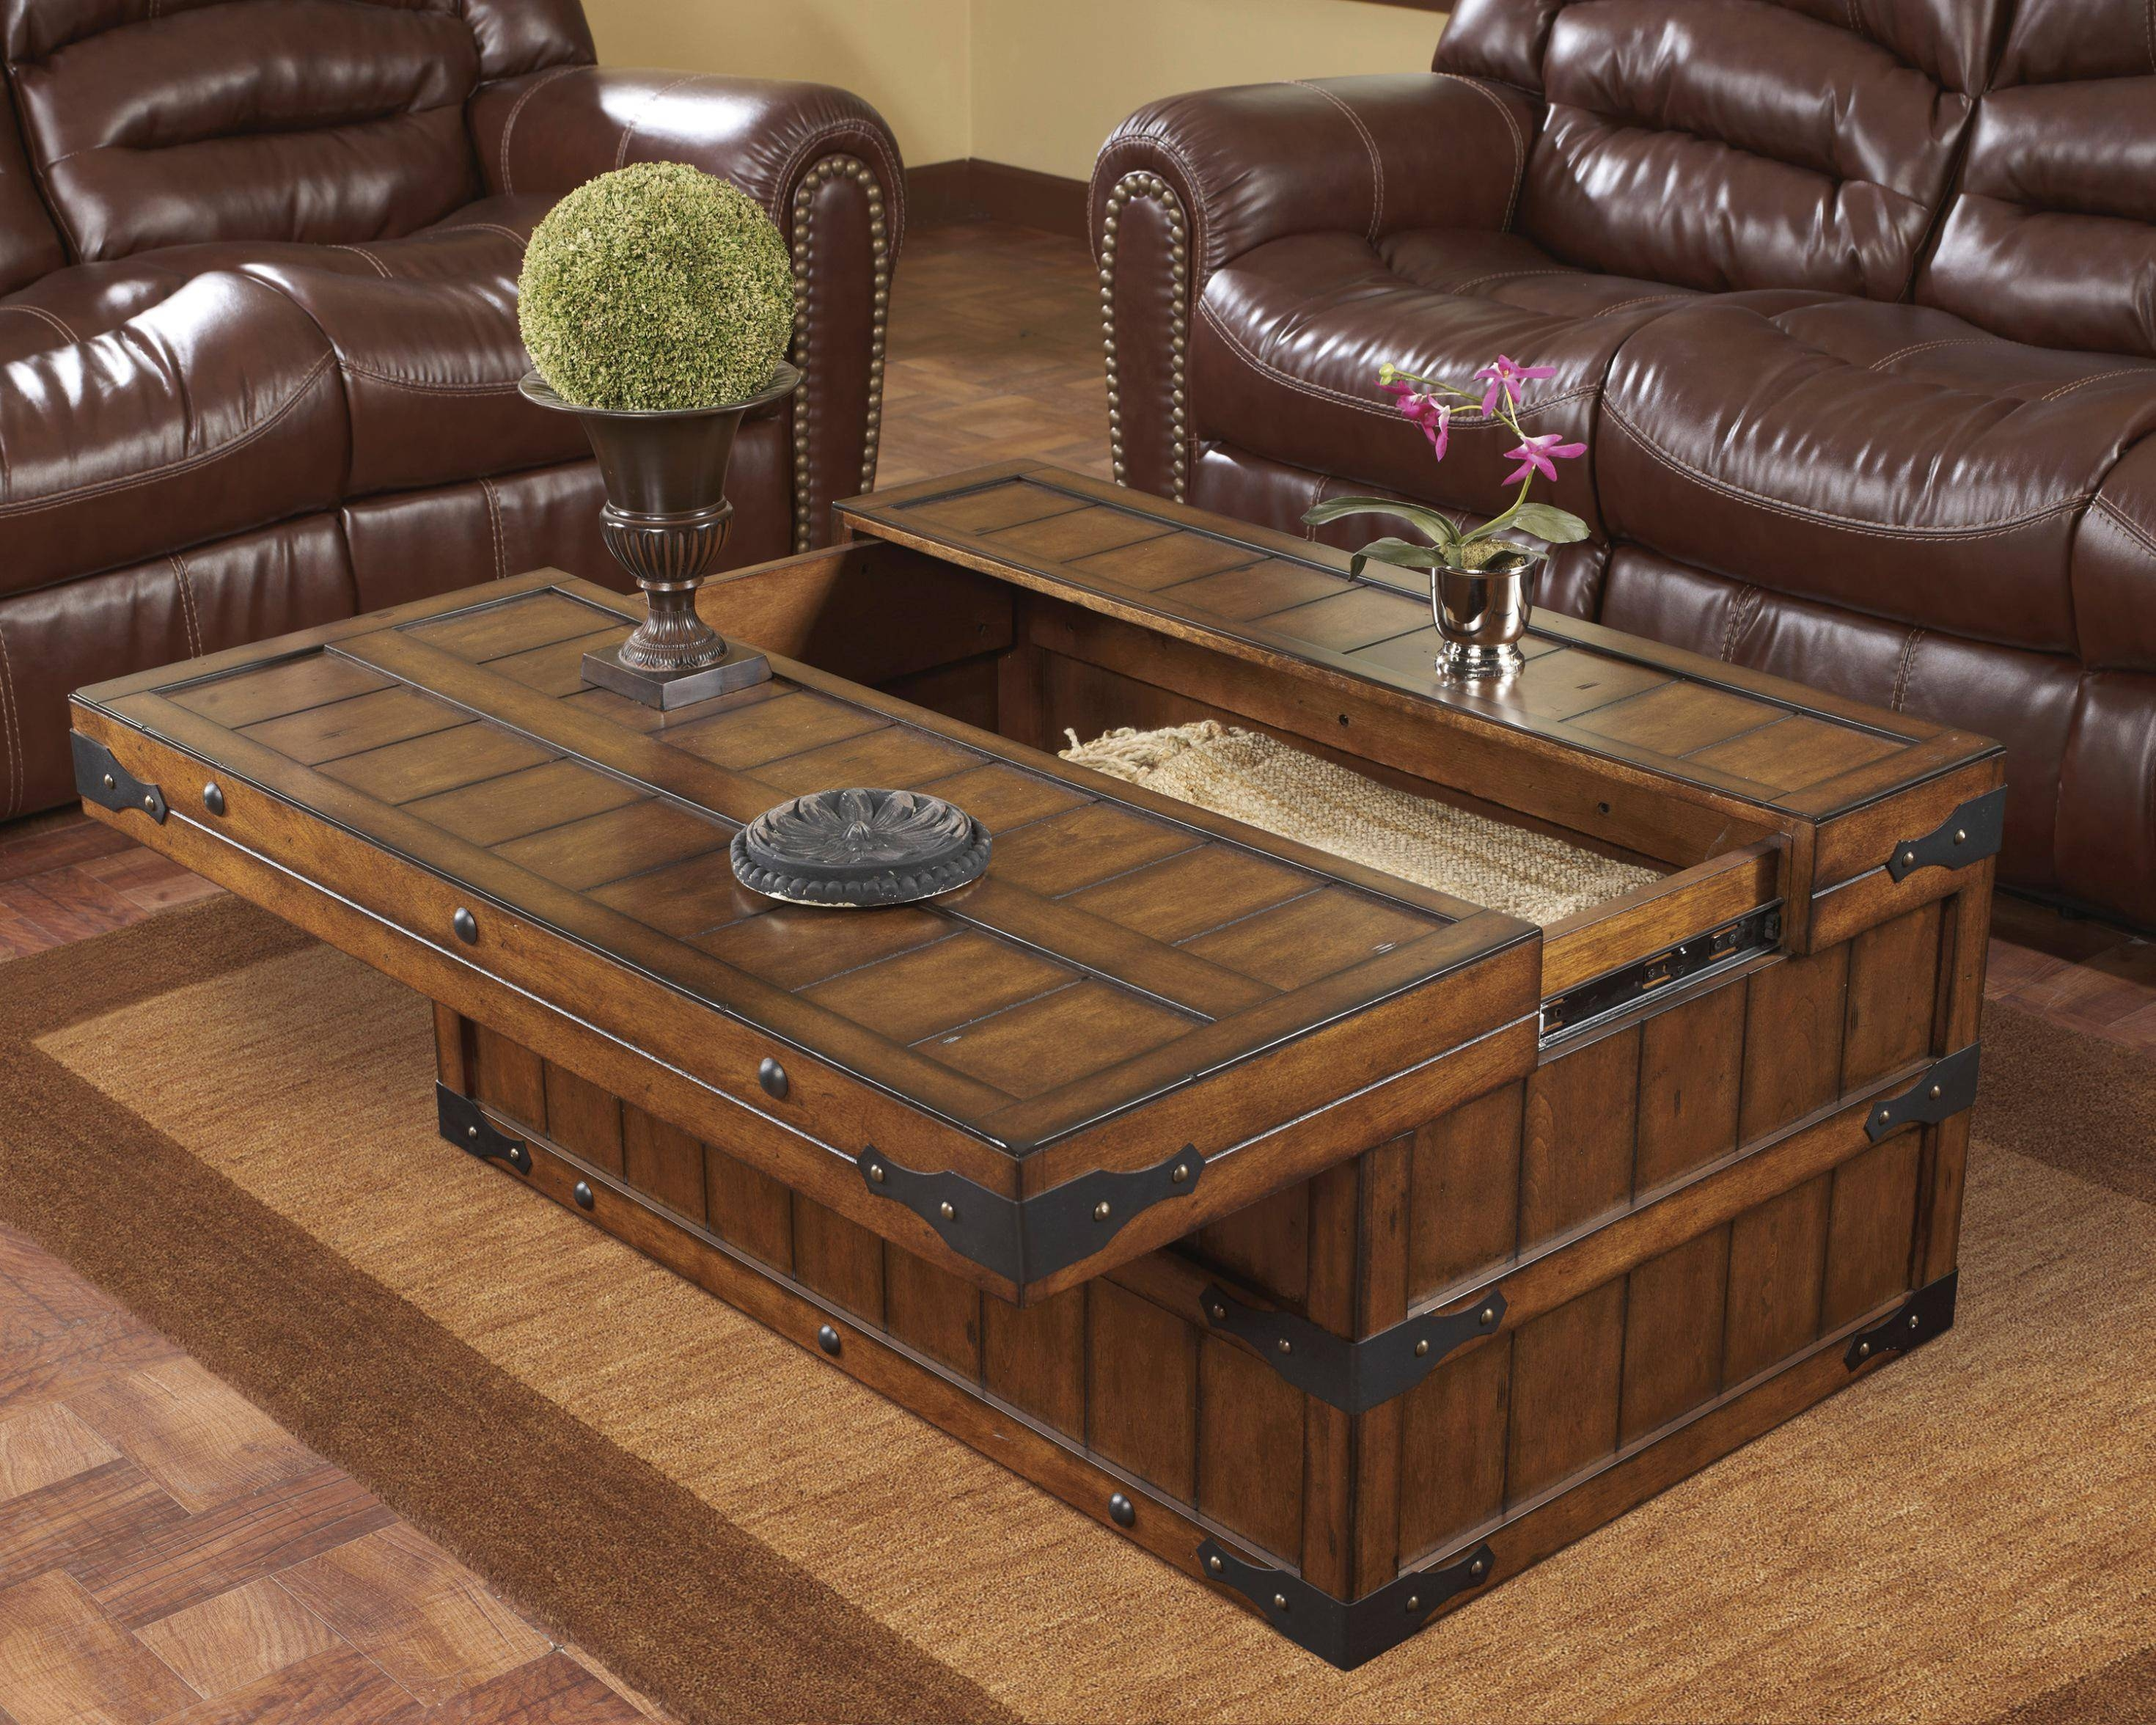 Coffee Table: Brilliant Rustic Trunk Coffee Table Ideas Square inside Wooden Trunks Coffee Tables (Image 4 of 30)